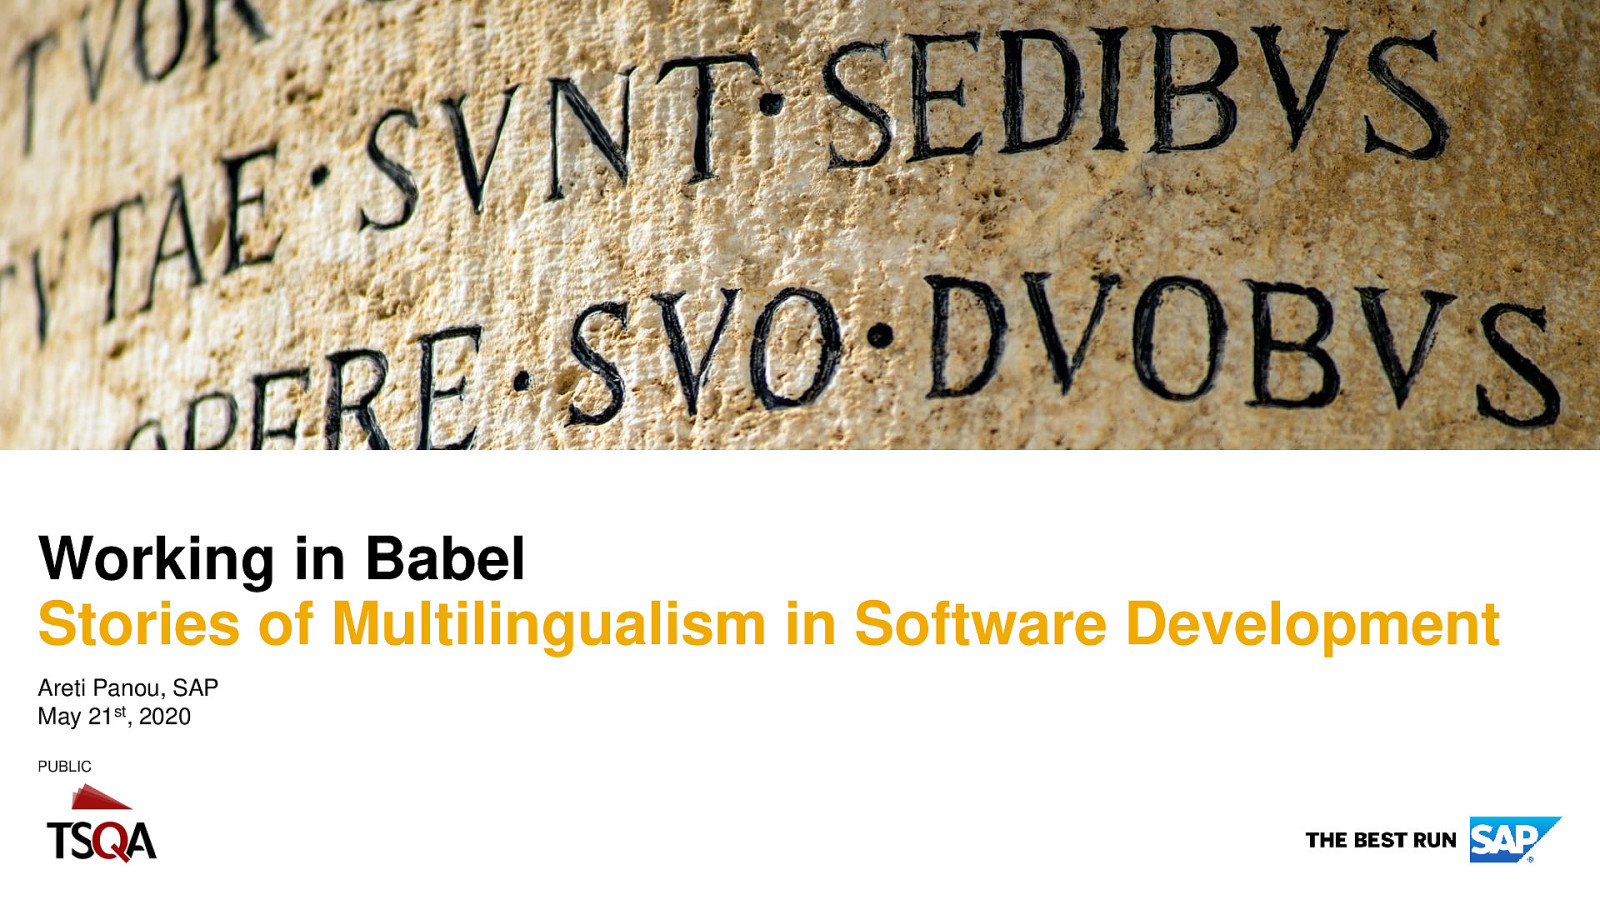 Working in Babel: Stories of Multilingualism in Software Development